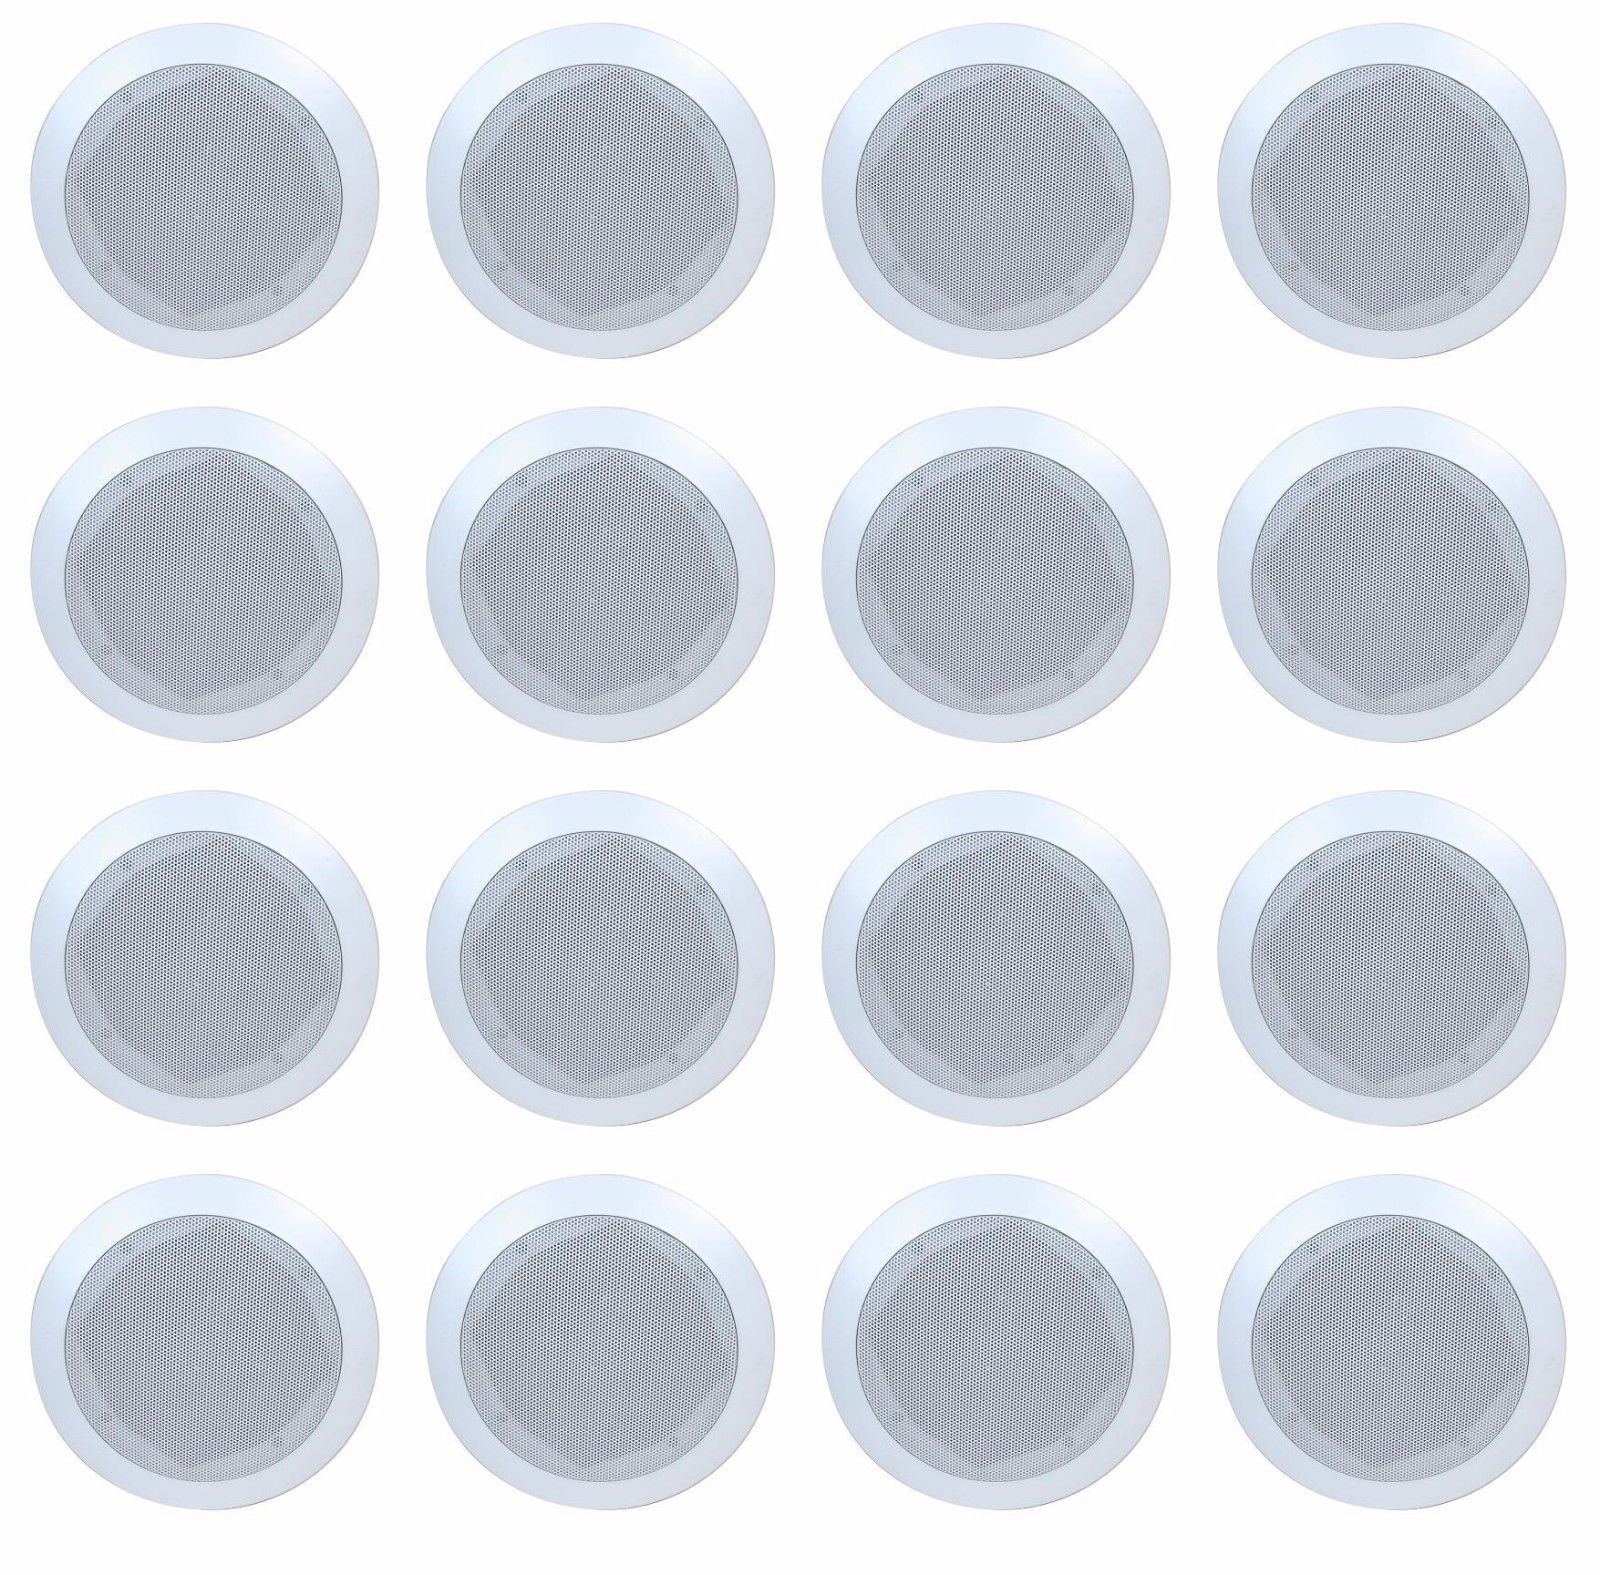 Lot of 16 (8 Pairs) Fully Enclosed 6.5'' In-Wall / Ceiling Speakers - Contractors Lot